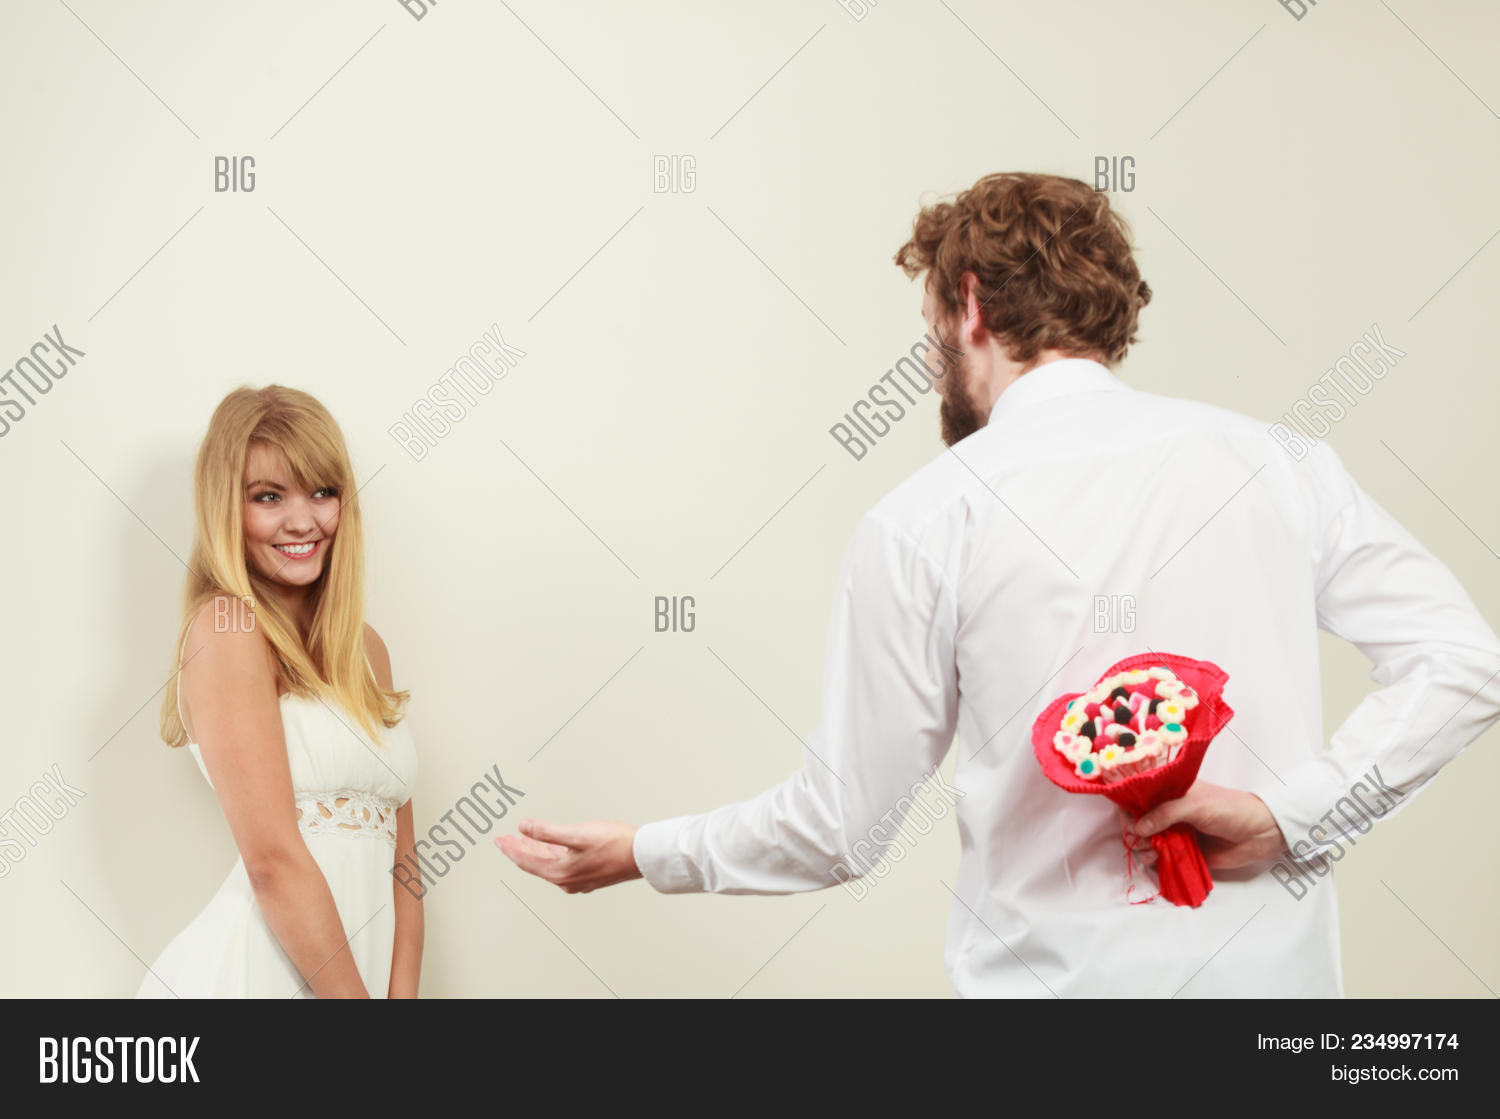 Man holding candy image photo free trial bigstock man holding candy bunch flowers boyfriend with surprise present gift for pretty woman girlfriend mightylinksfo